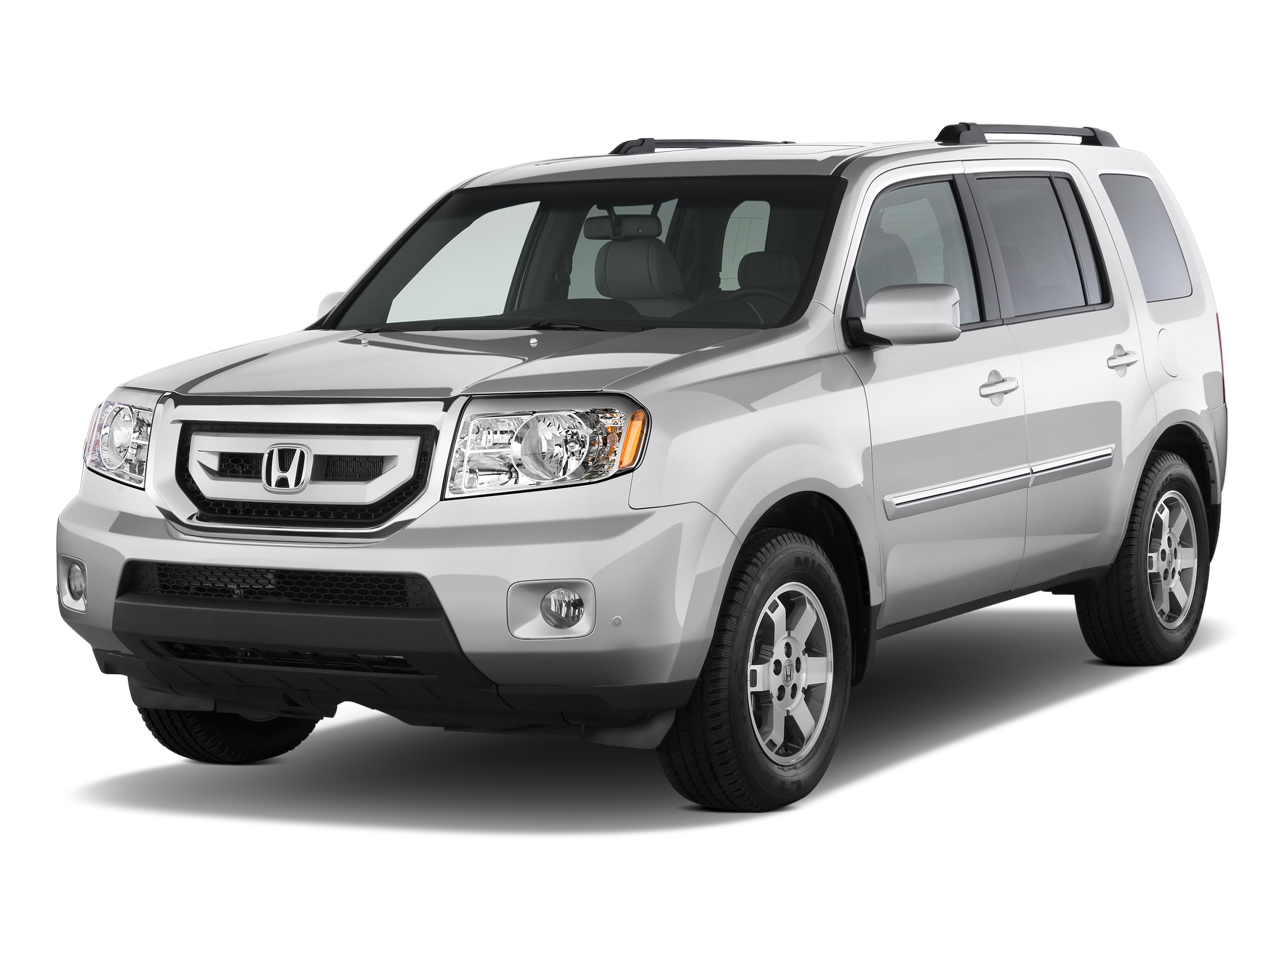 2011 honda pilot safety review and crash test ratings for Honda pilot images